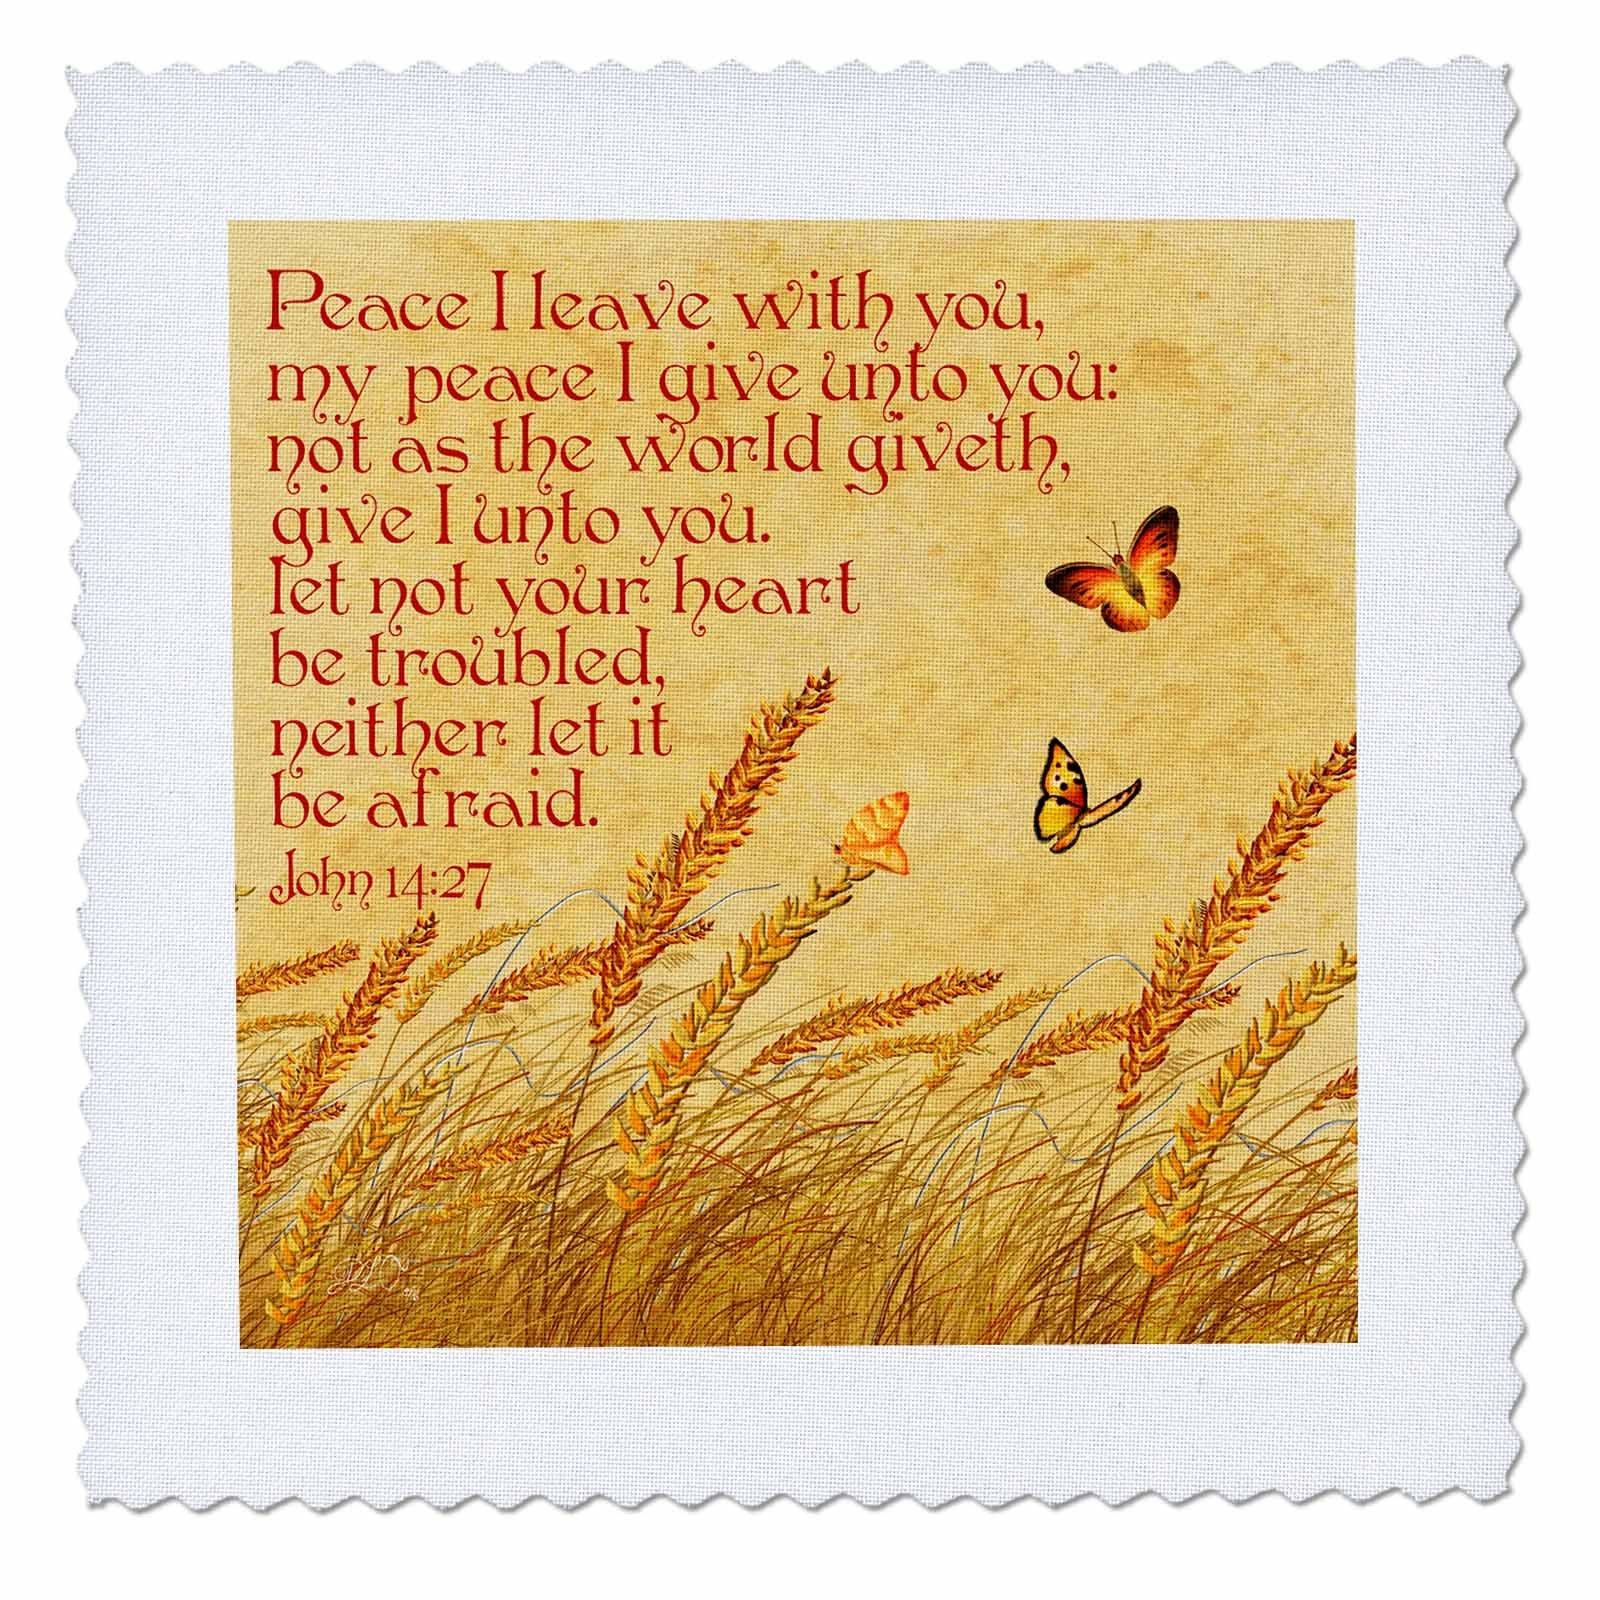 3dRose Dream Essence Designs-Bible Quotes - Bible quote John Jesus said Peace I give unto you, meadow background - 22x22 inch quilt square (qs_262335_9) by 3dRose